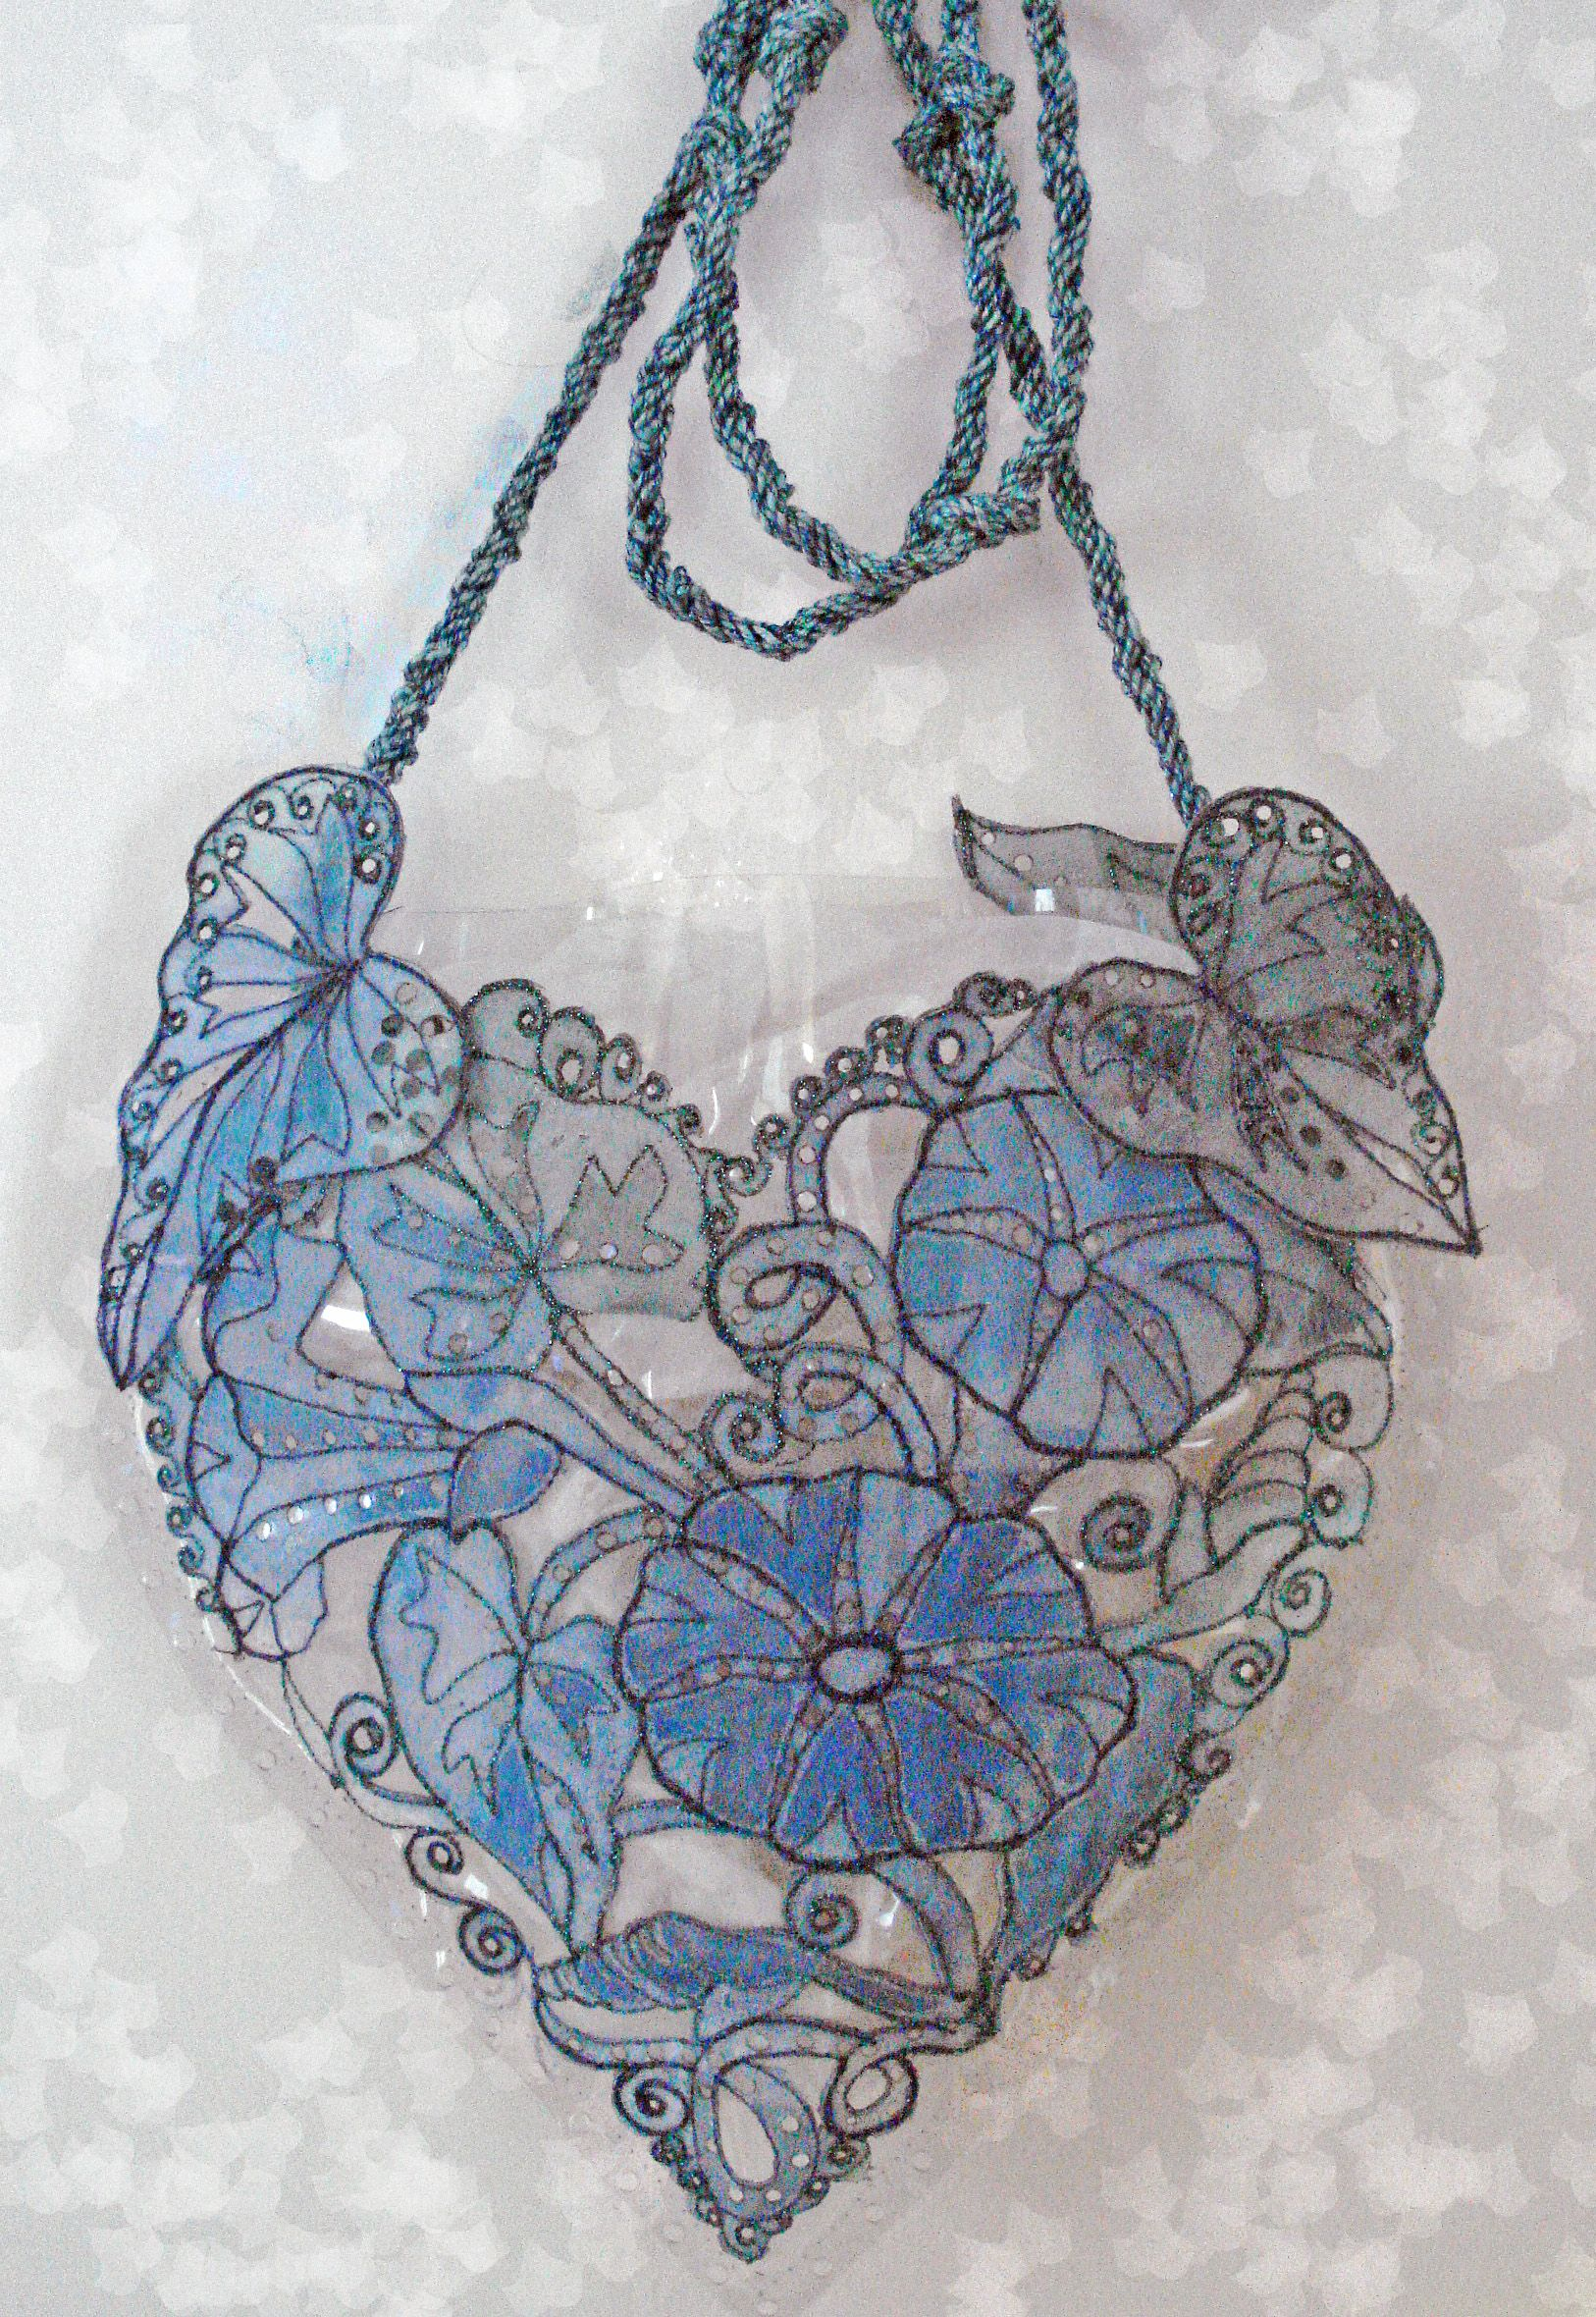 """Lovely handbag, had to repin. Link is not at all helpful. Will track down better link if I can find one. I doubt this is a DIY, but would like to know what this handbag is made of and who makes it - """"Morning Glory heart-shaped handbag"""""""